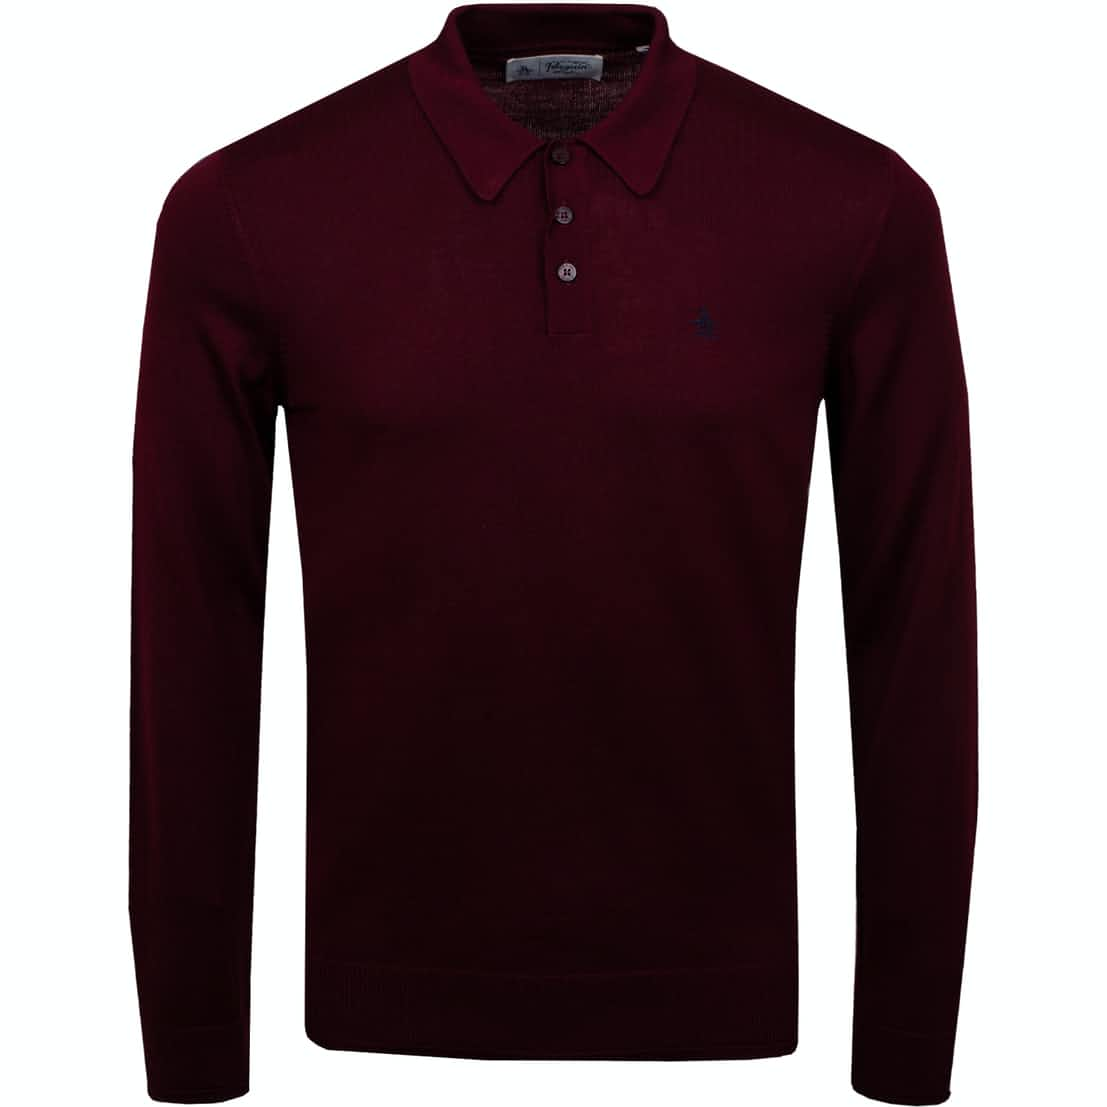 Merino LS Polo Shirt Tawny Port - AW19